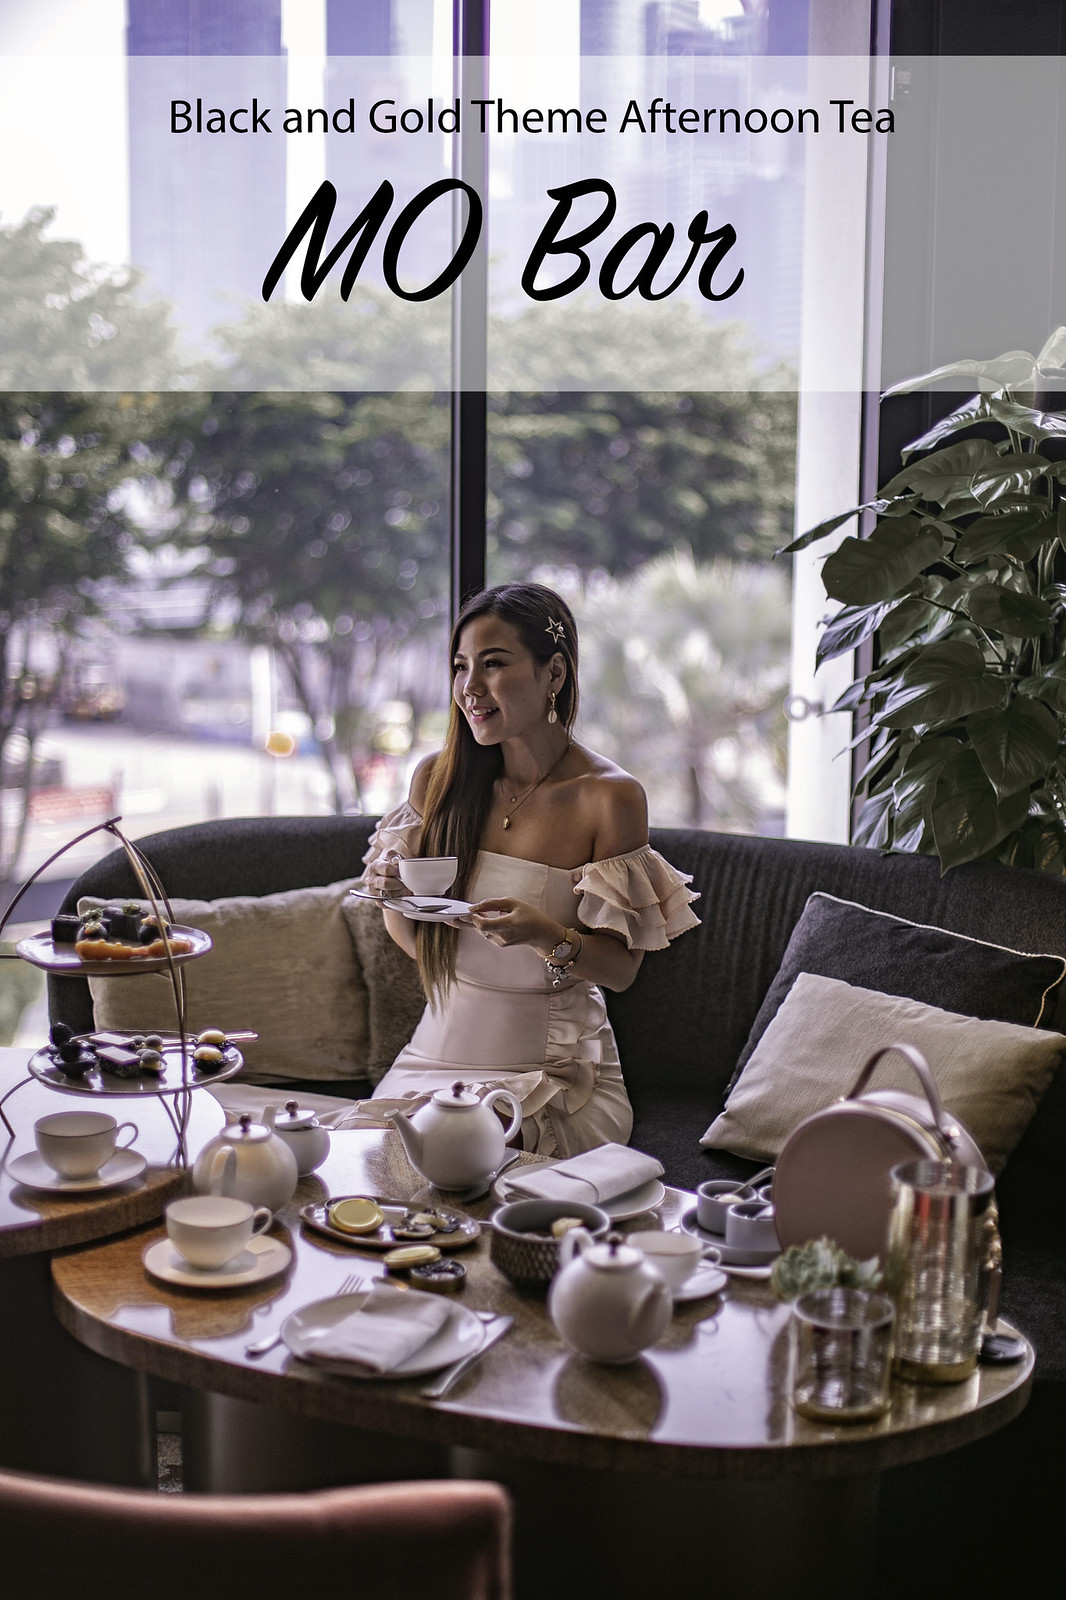 [Food & Lifestyle] Black & Gold Theme Afternoon Tea at MO Bar, Mandarin Oriental Singapore